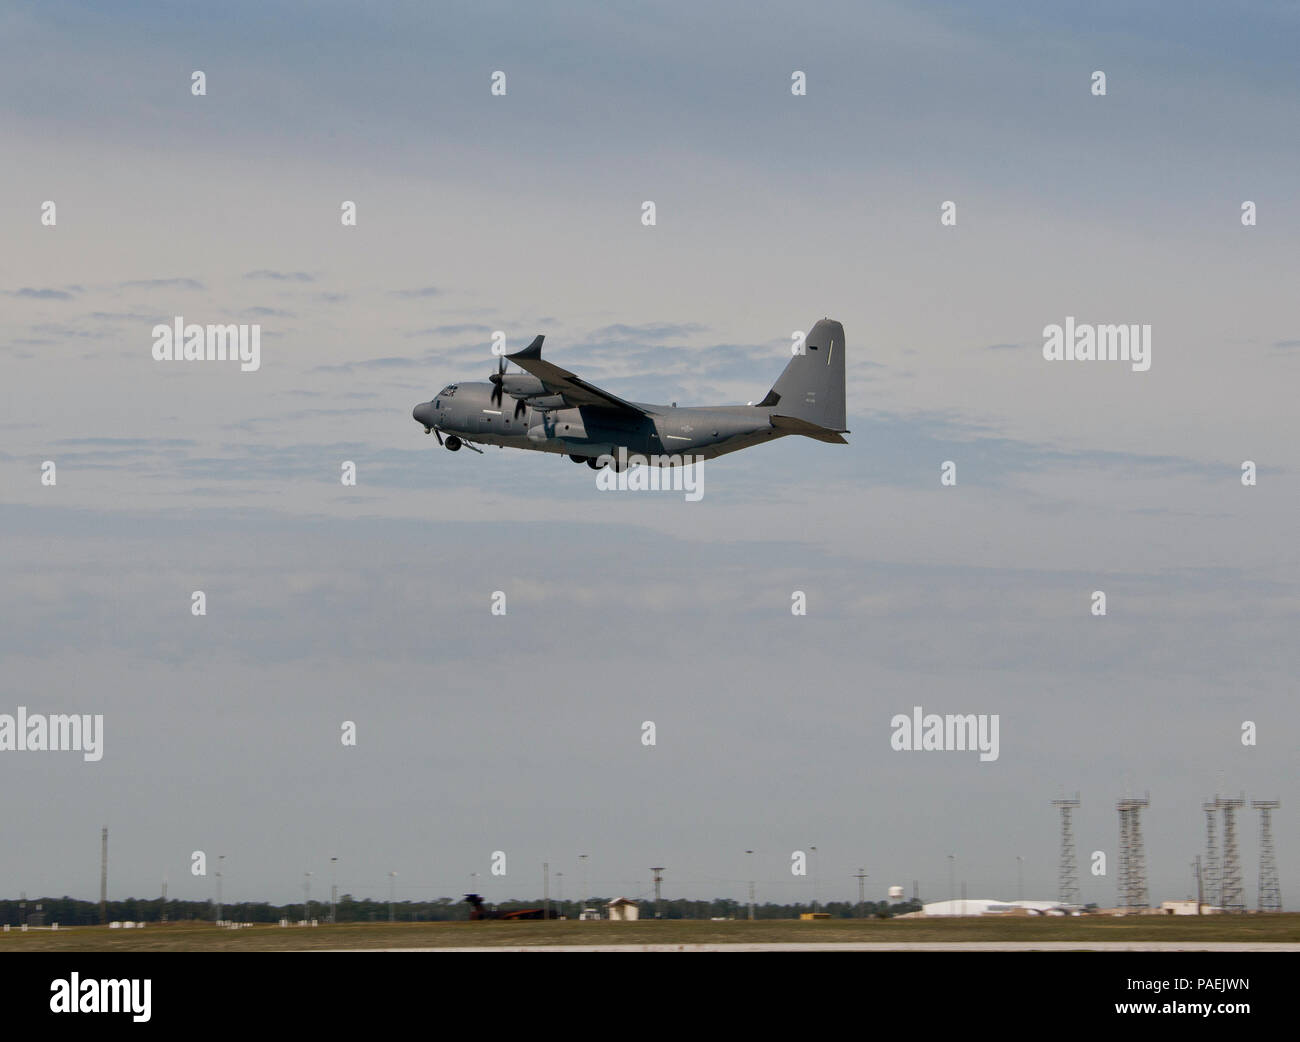 A modified MC-130J lifts off from Eglin Air Force Base, Fla., for a test mission. The aircraft was fitted with vertical fins on each wing, called winglets.  The 413th Flight Test Squadron aircrew and engineers tested the modified aircraft over eight flights.  The goal of the tests was to collect data on possible fuel efficiency improvements and performance with the winglets and lift distribution control system installed.  (U.S. Air Force photo/Samuel King Jr.) - Stock Image